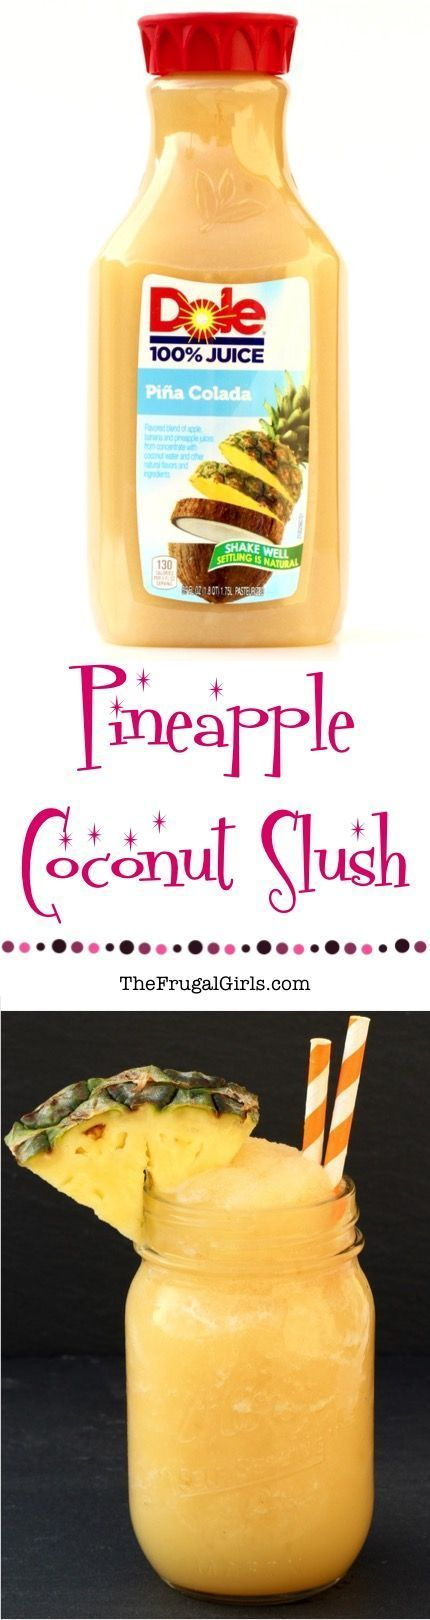 Pineapple Coconut Slush Pina Colada Recipe! ~ from TheFrugalGirls.com ~ this is so EASY to make and crazy delicious... the perfect Summer slushie drink!